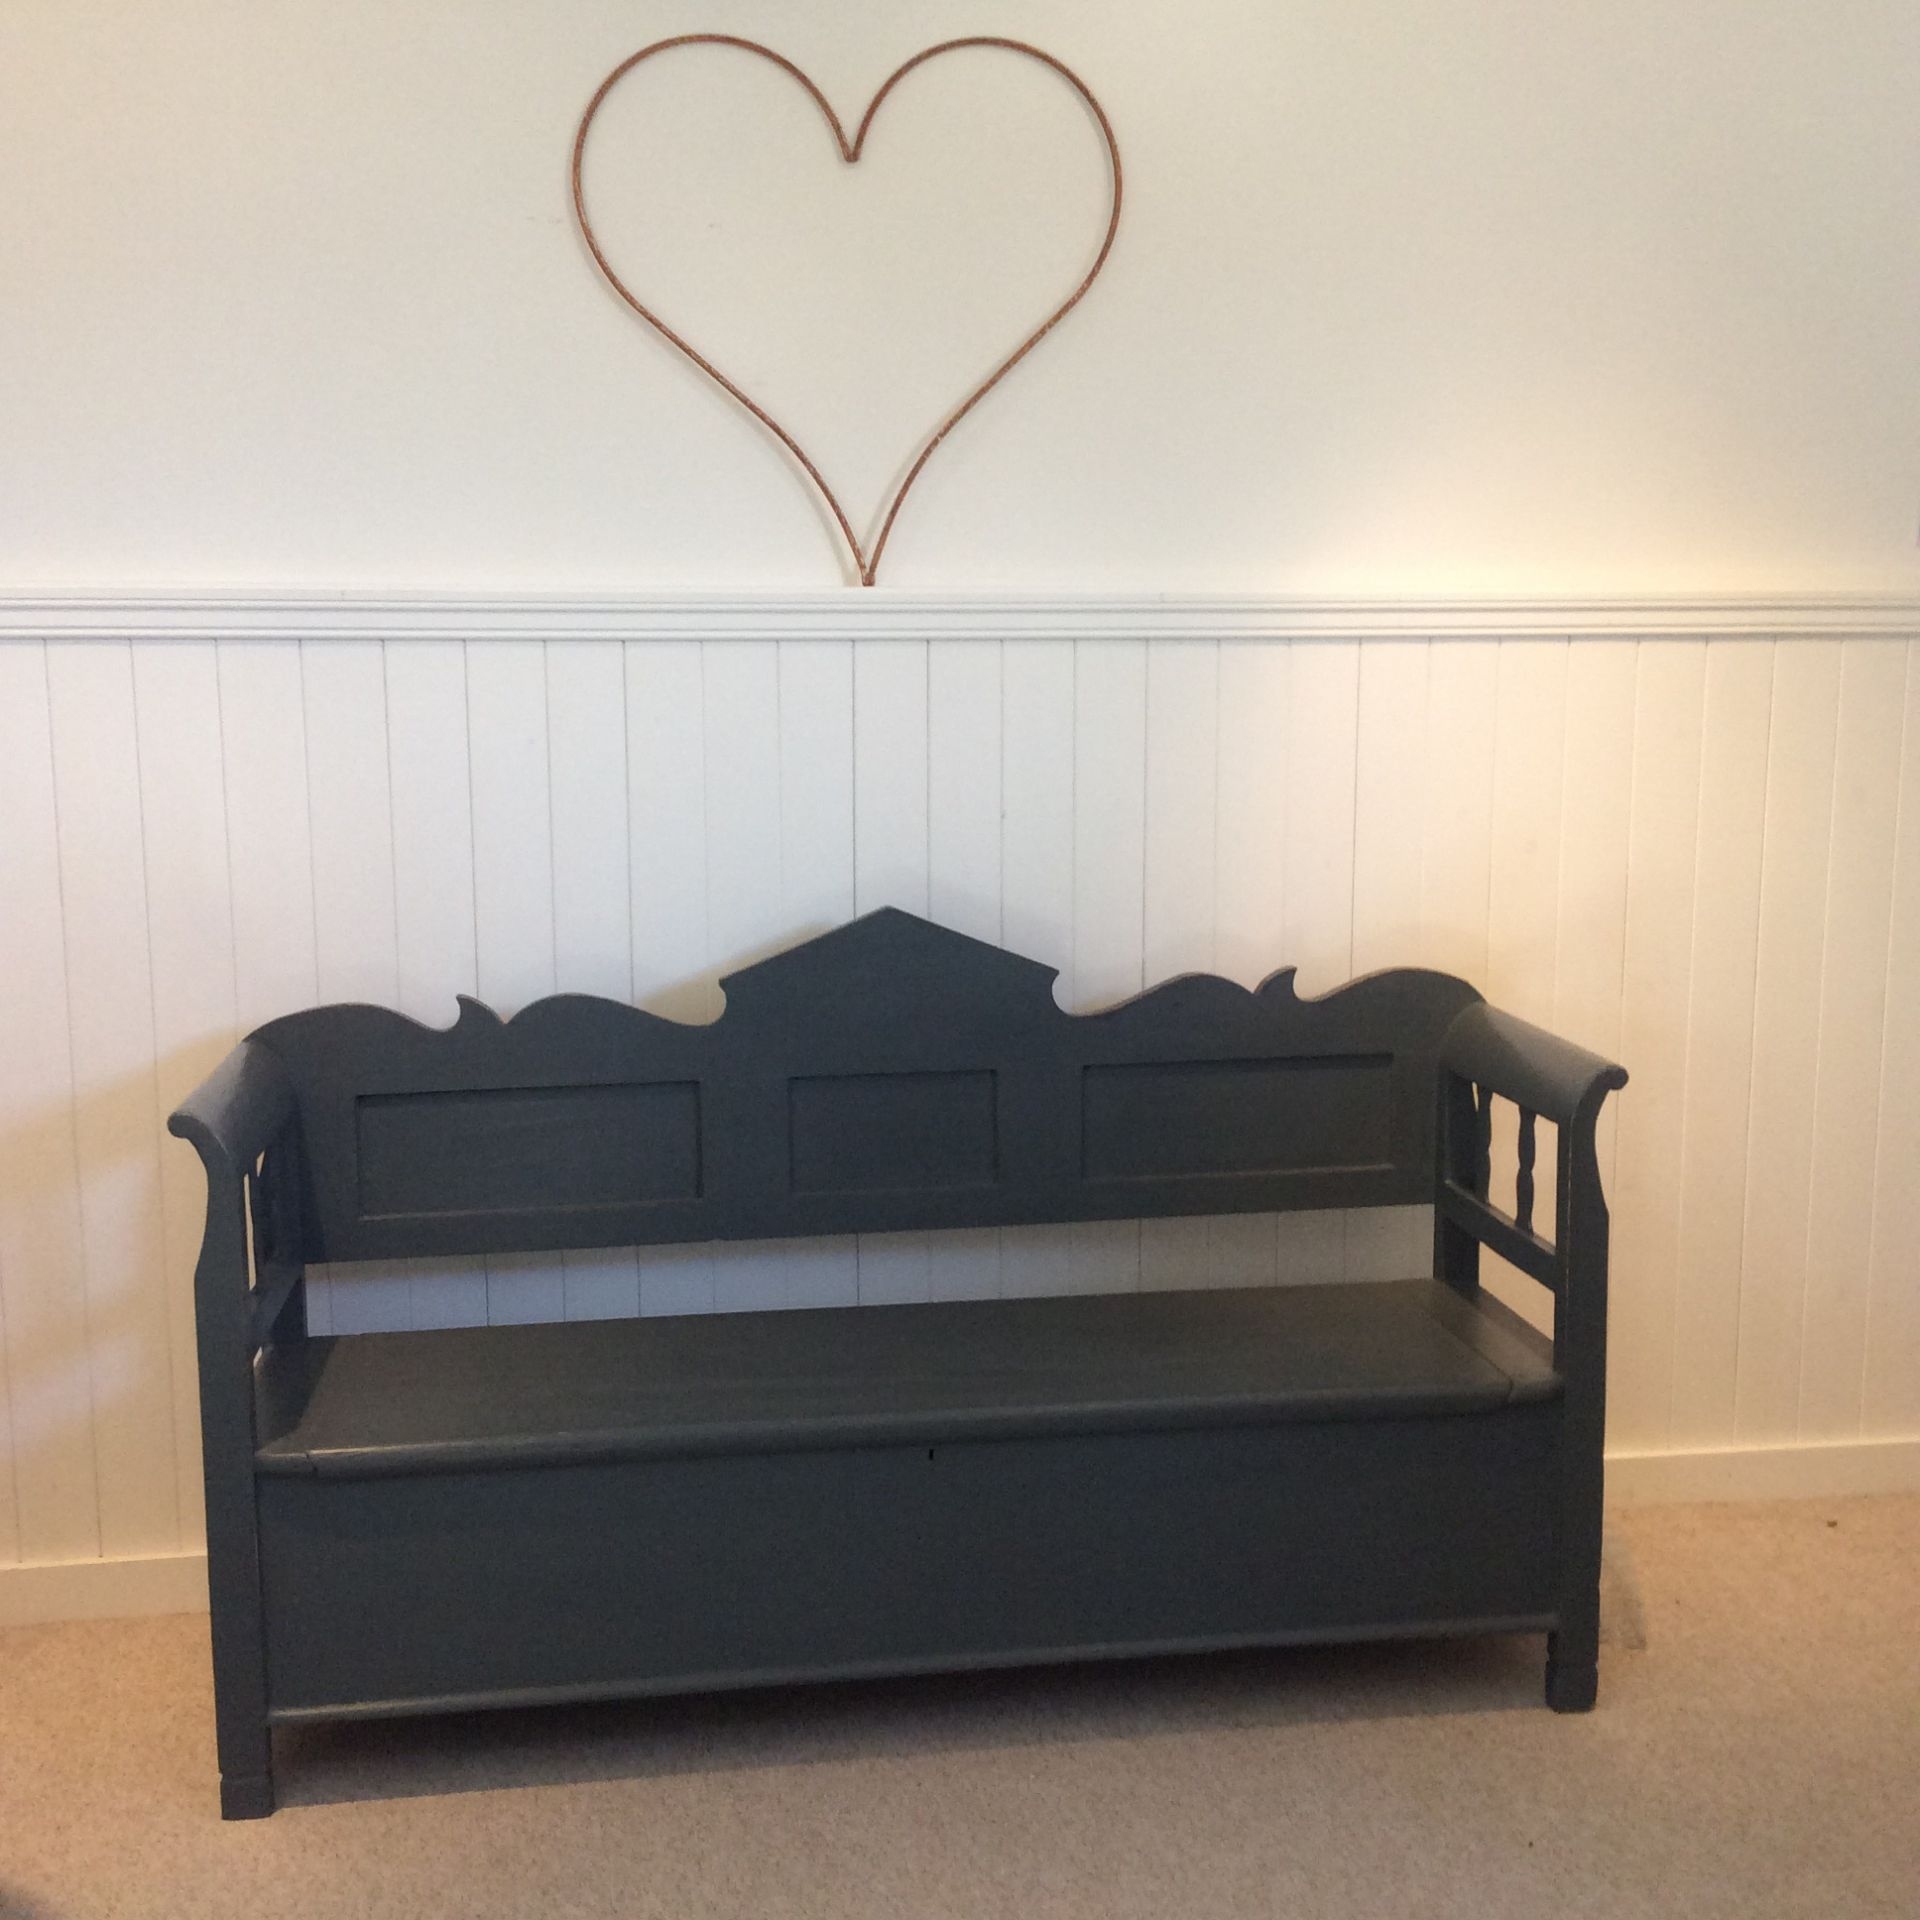 Favorite Hand Painted Furniture - Bedsides, Benches & Bookcases For Sale  FY93